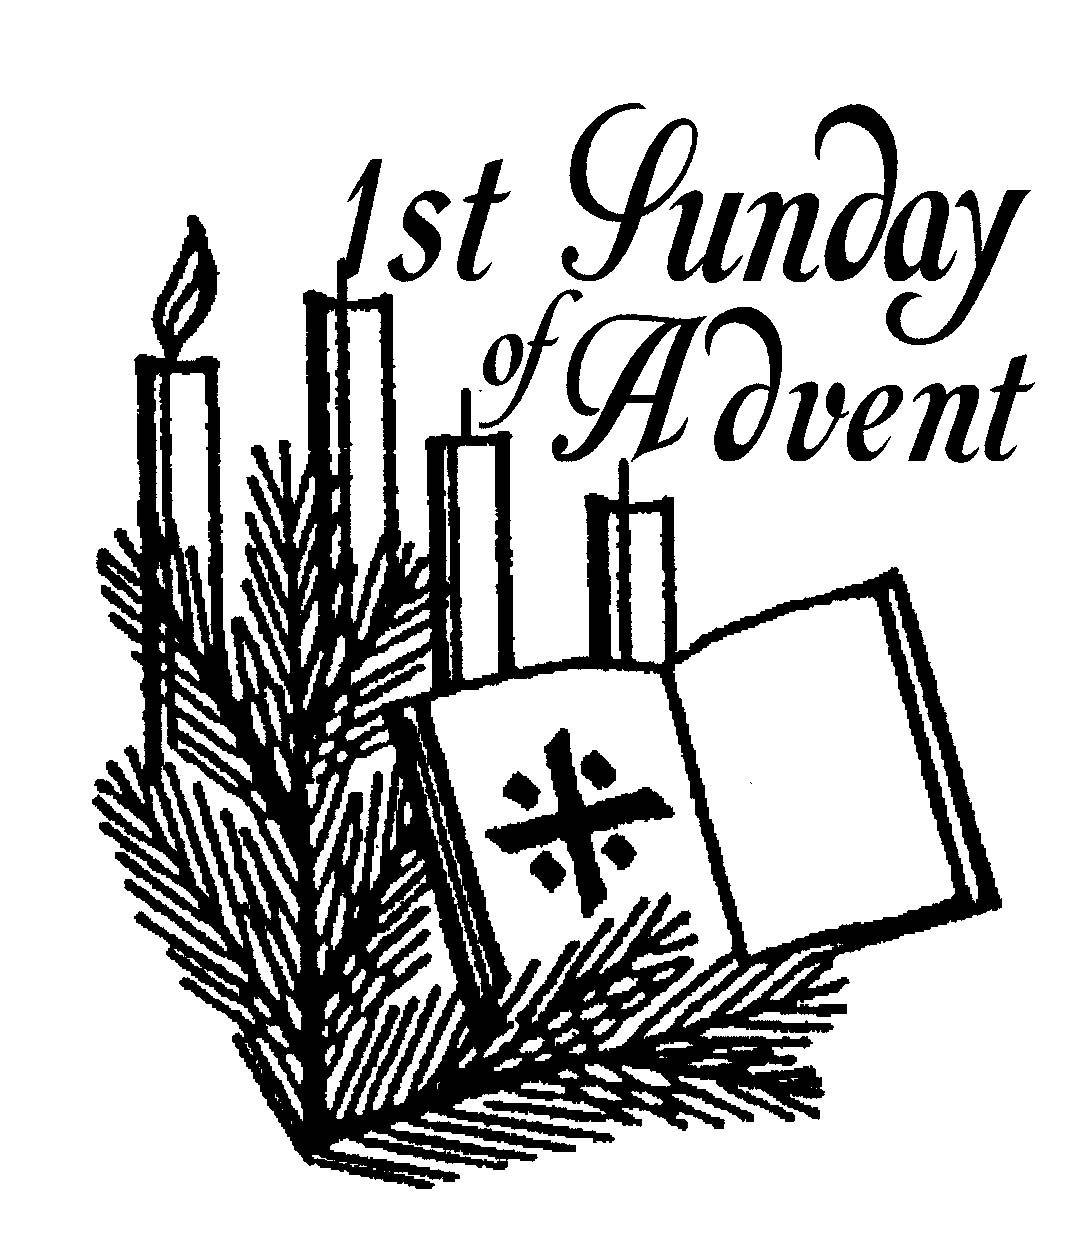 First Sunday Advent Clipart Black And White.